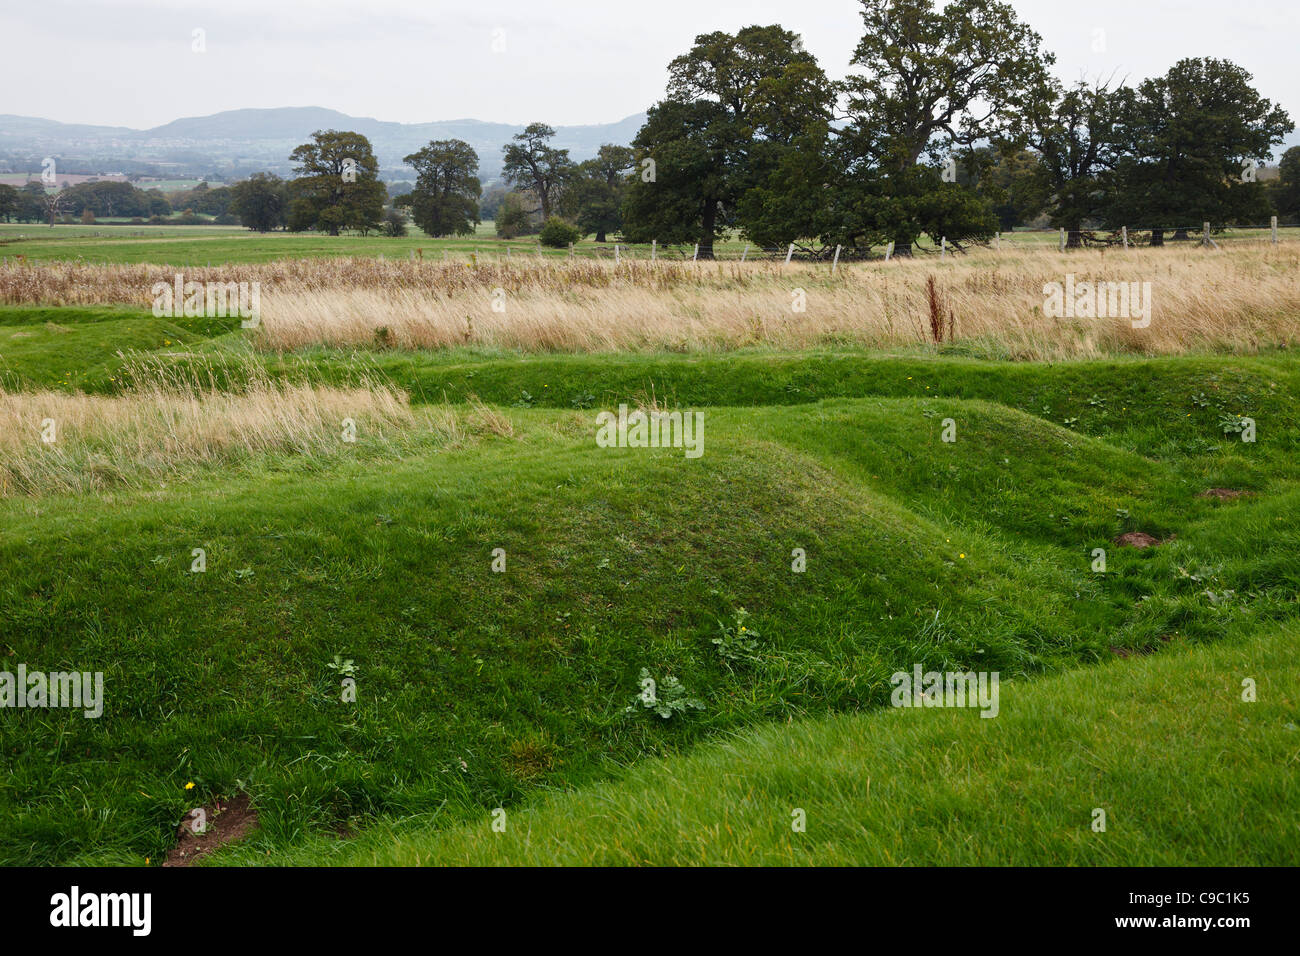 Remains of World War One trench training system in the grounds of Bodelwyddan Castle, Denbighshire, Wales - Stock Image